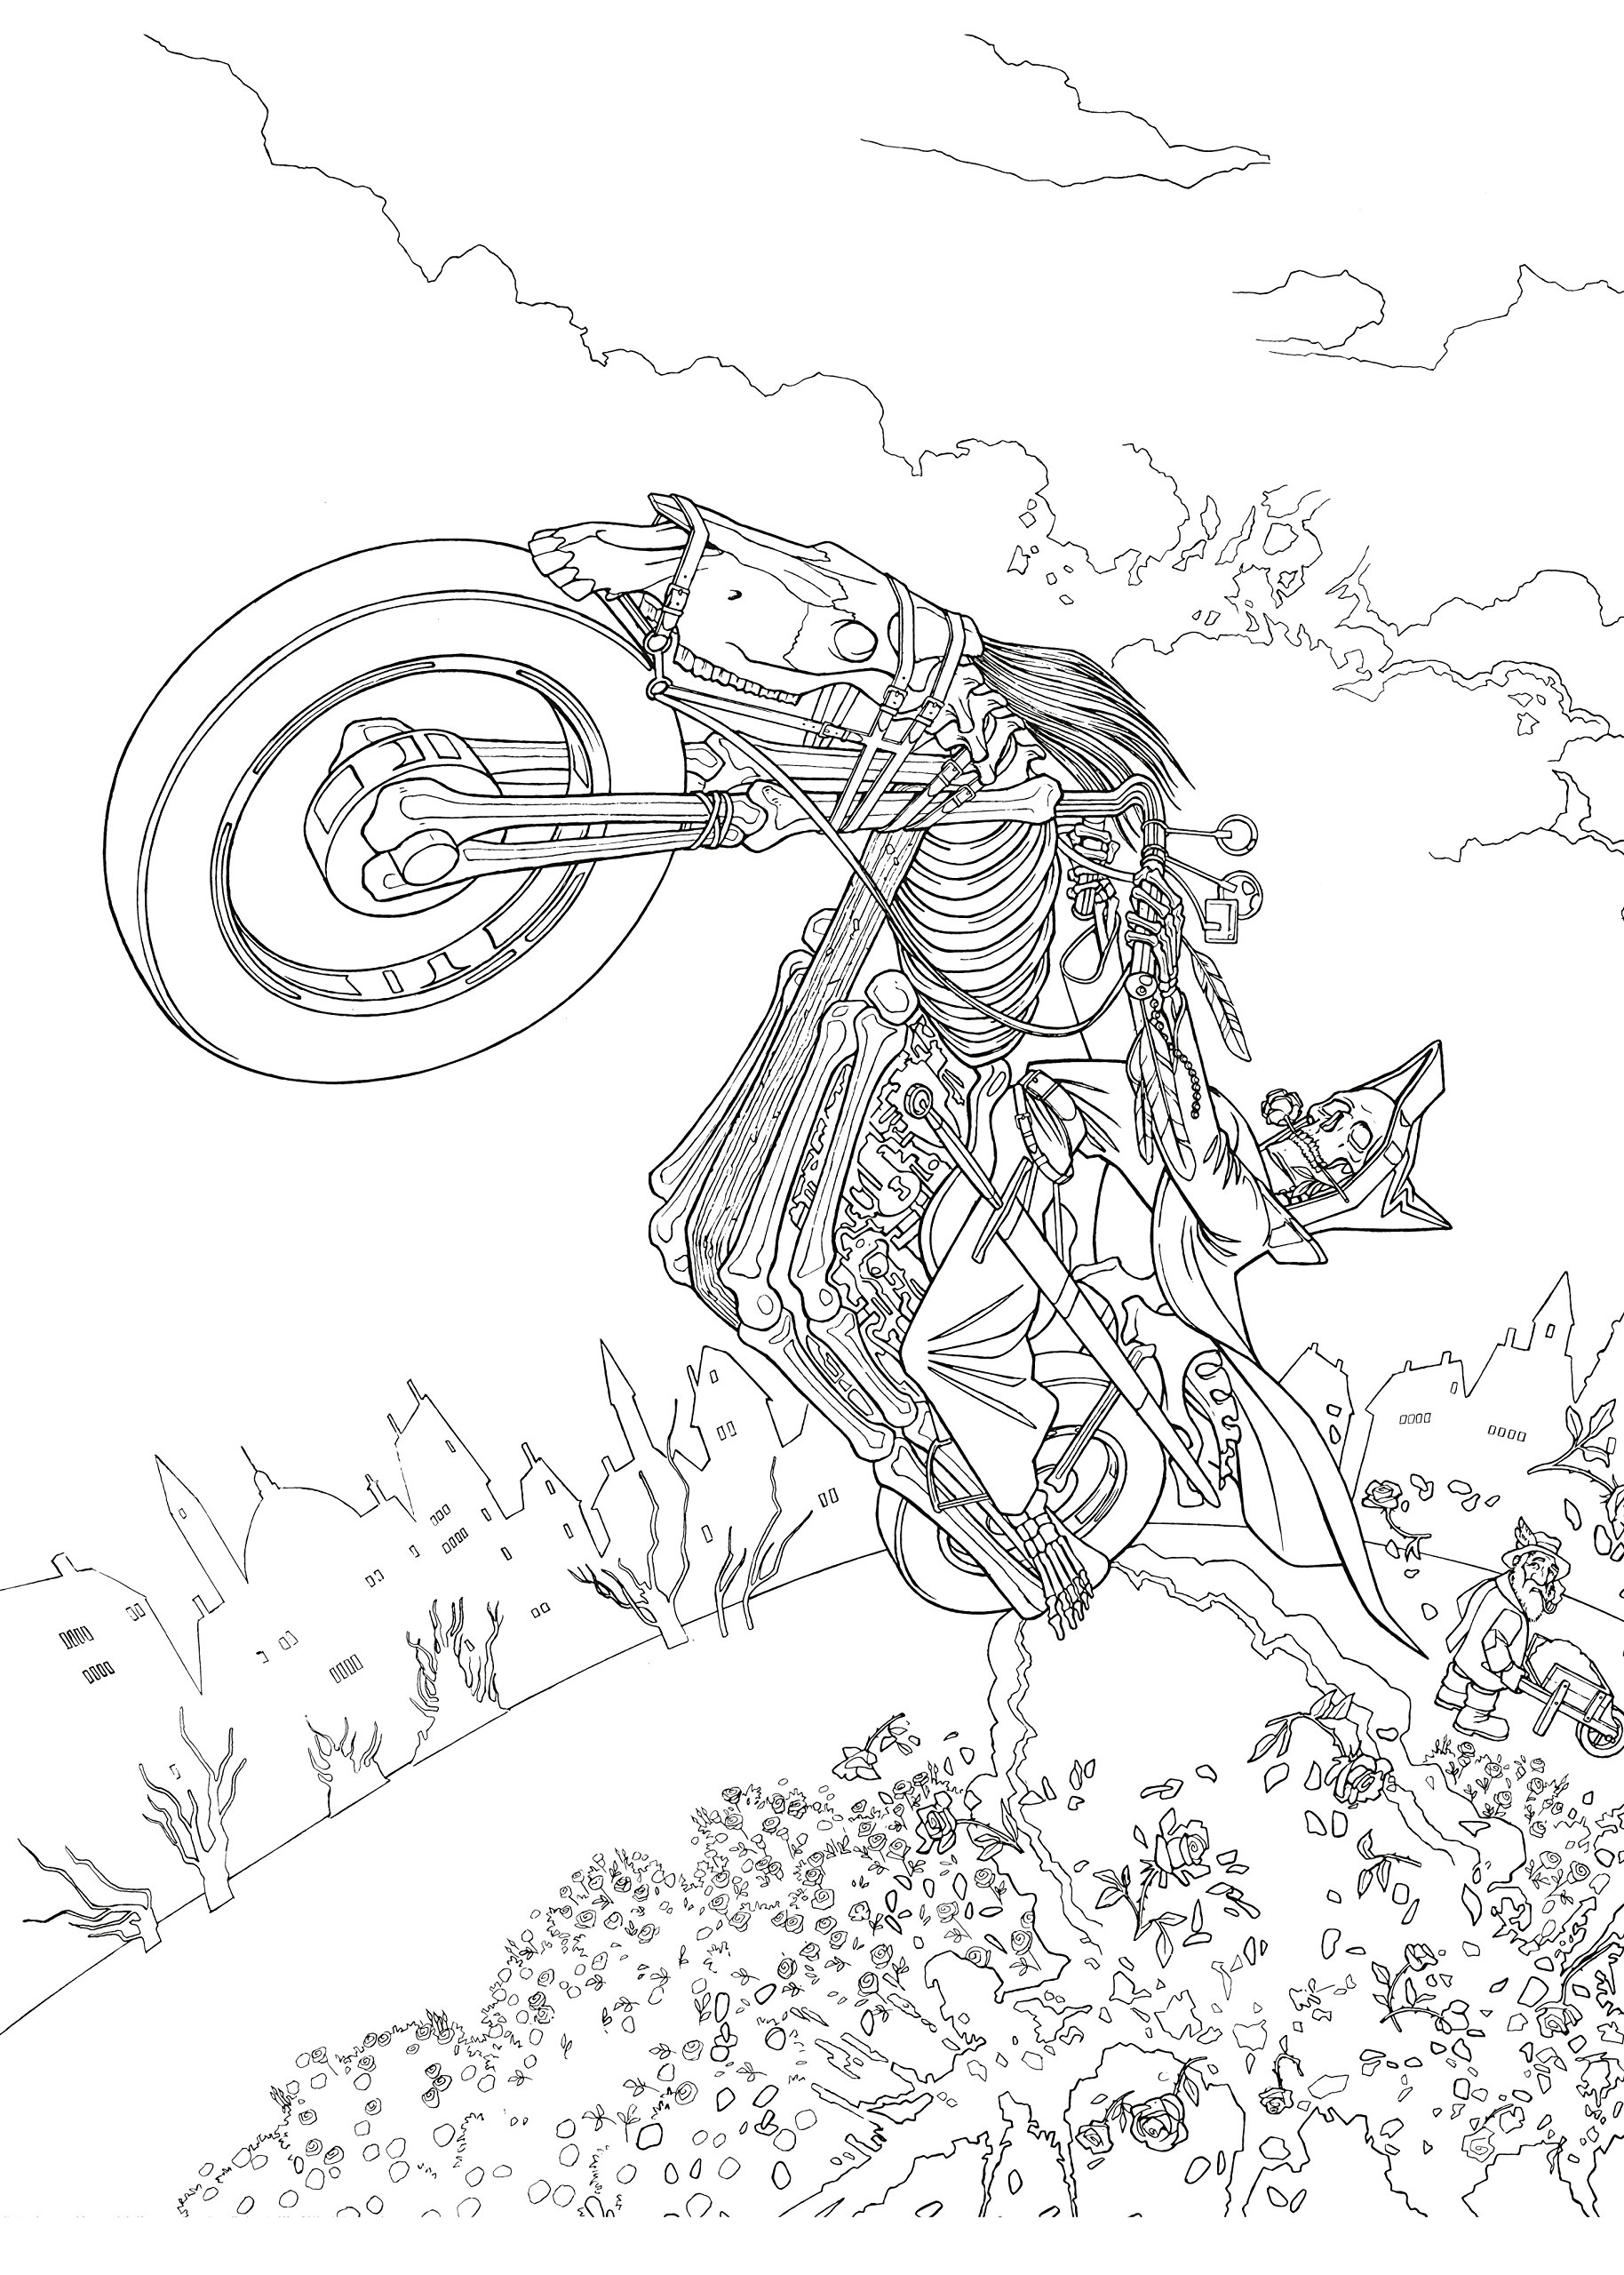 Discworld coloring #15, Download drawings